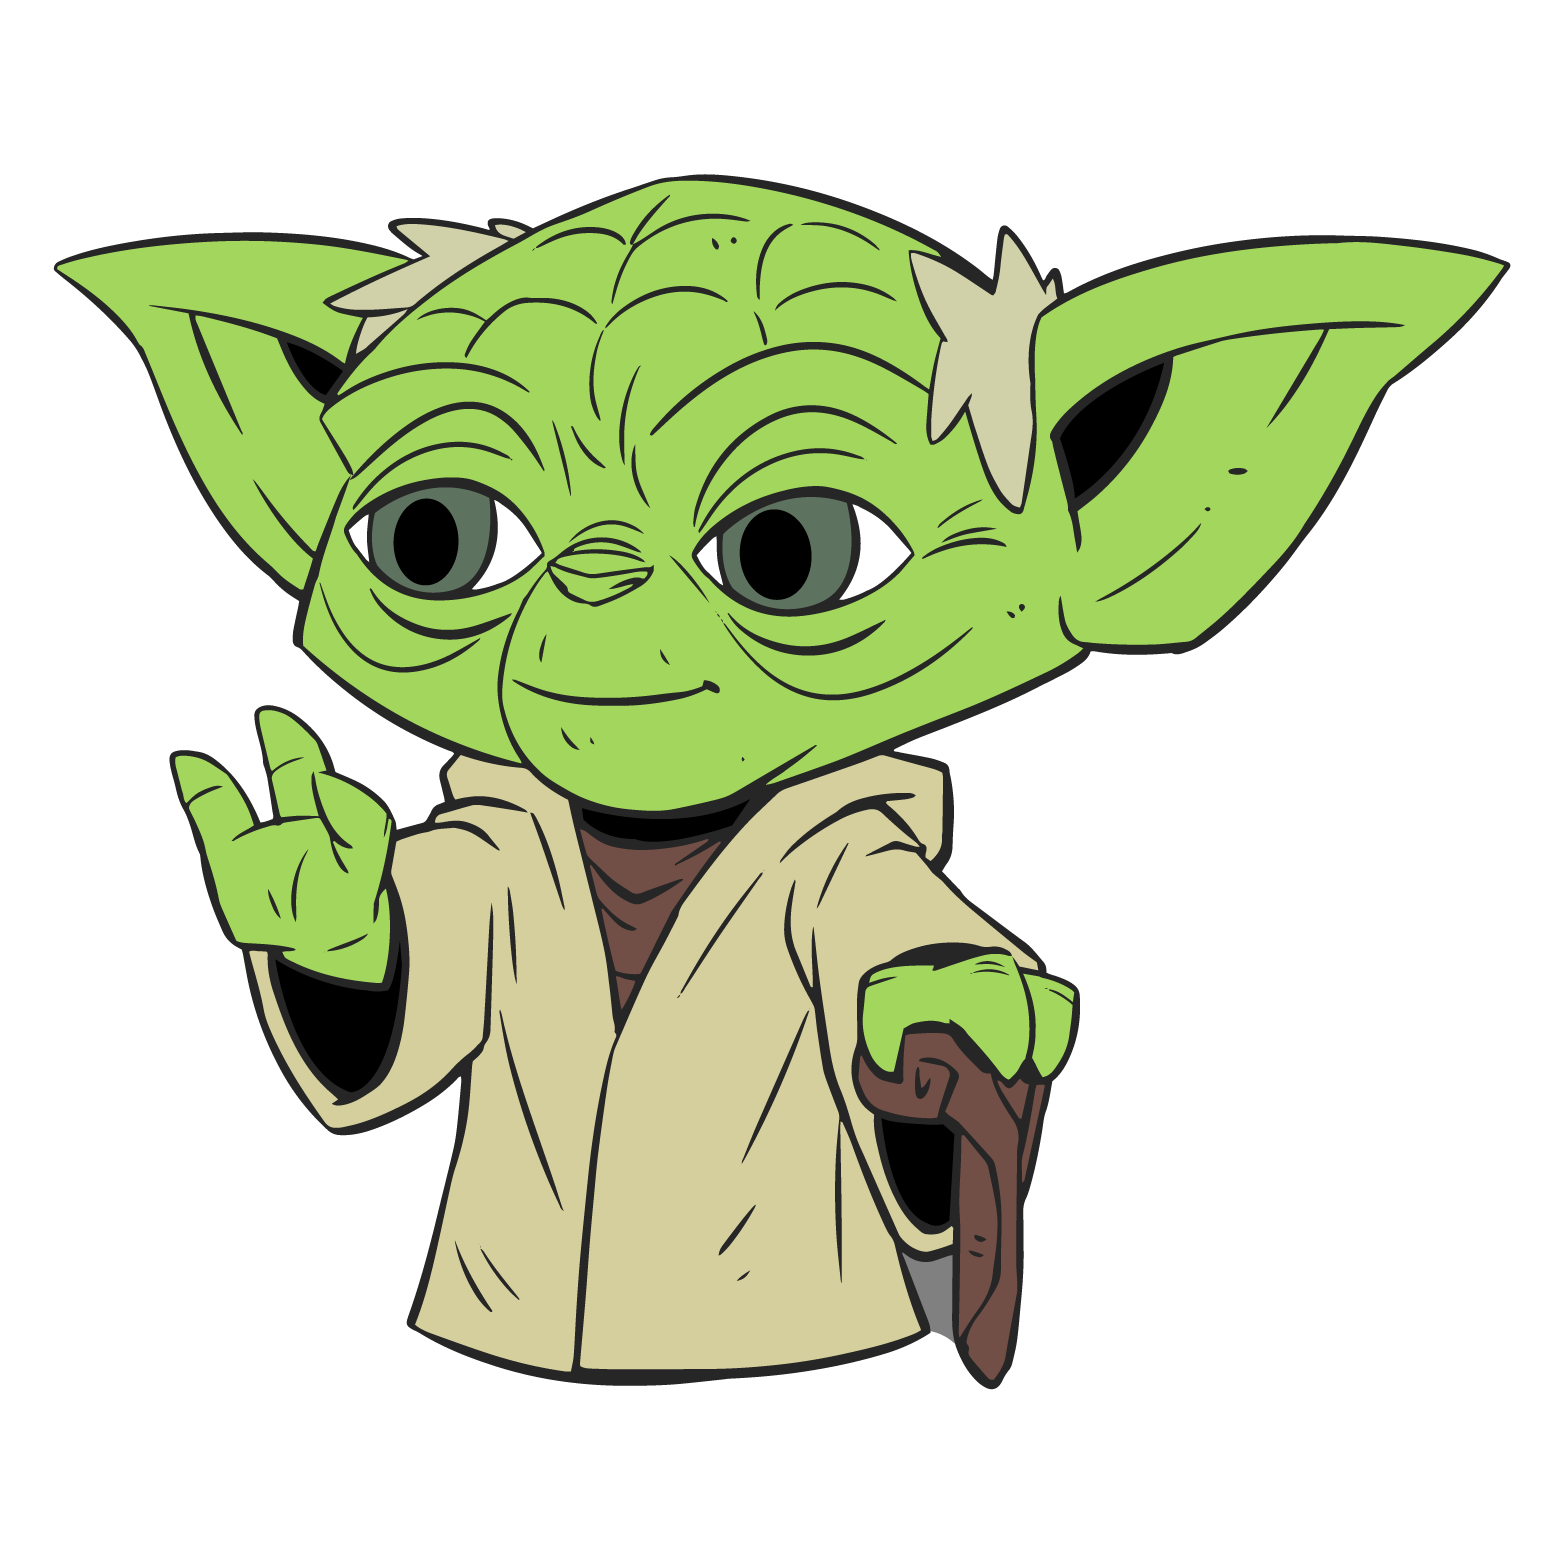 Starwars clipart cute. Of yoda at getdrawings